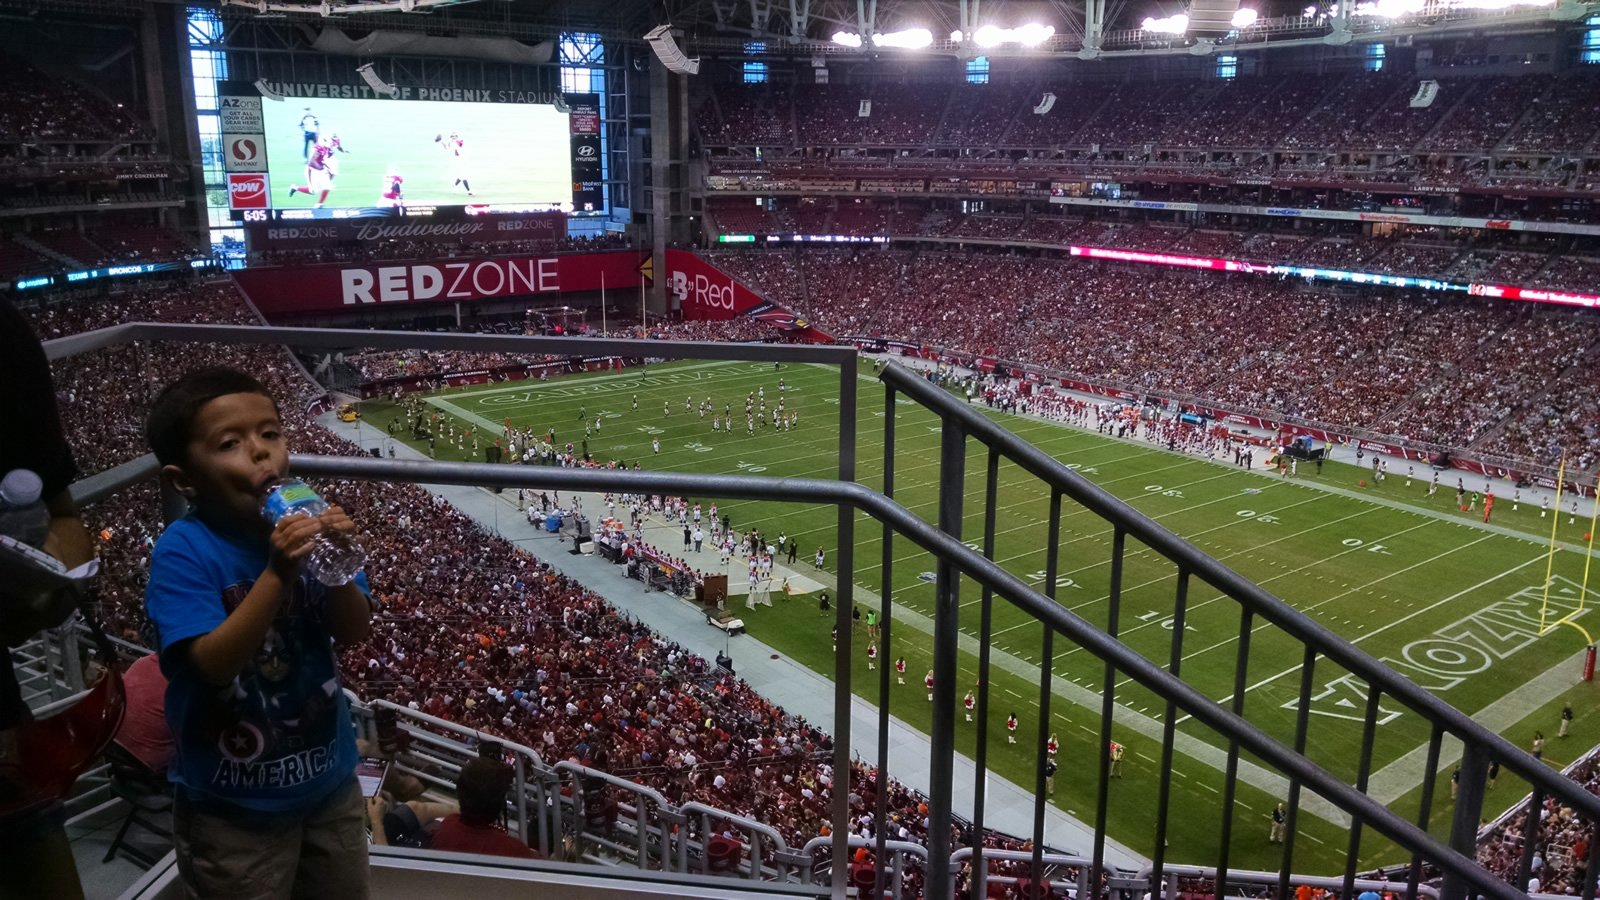 Arizona Cardinals Seat View for University of Phoenix Stadium Section 435, Row 1, Seat 22